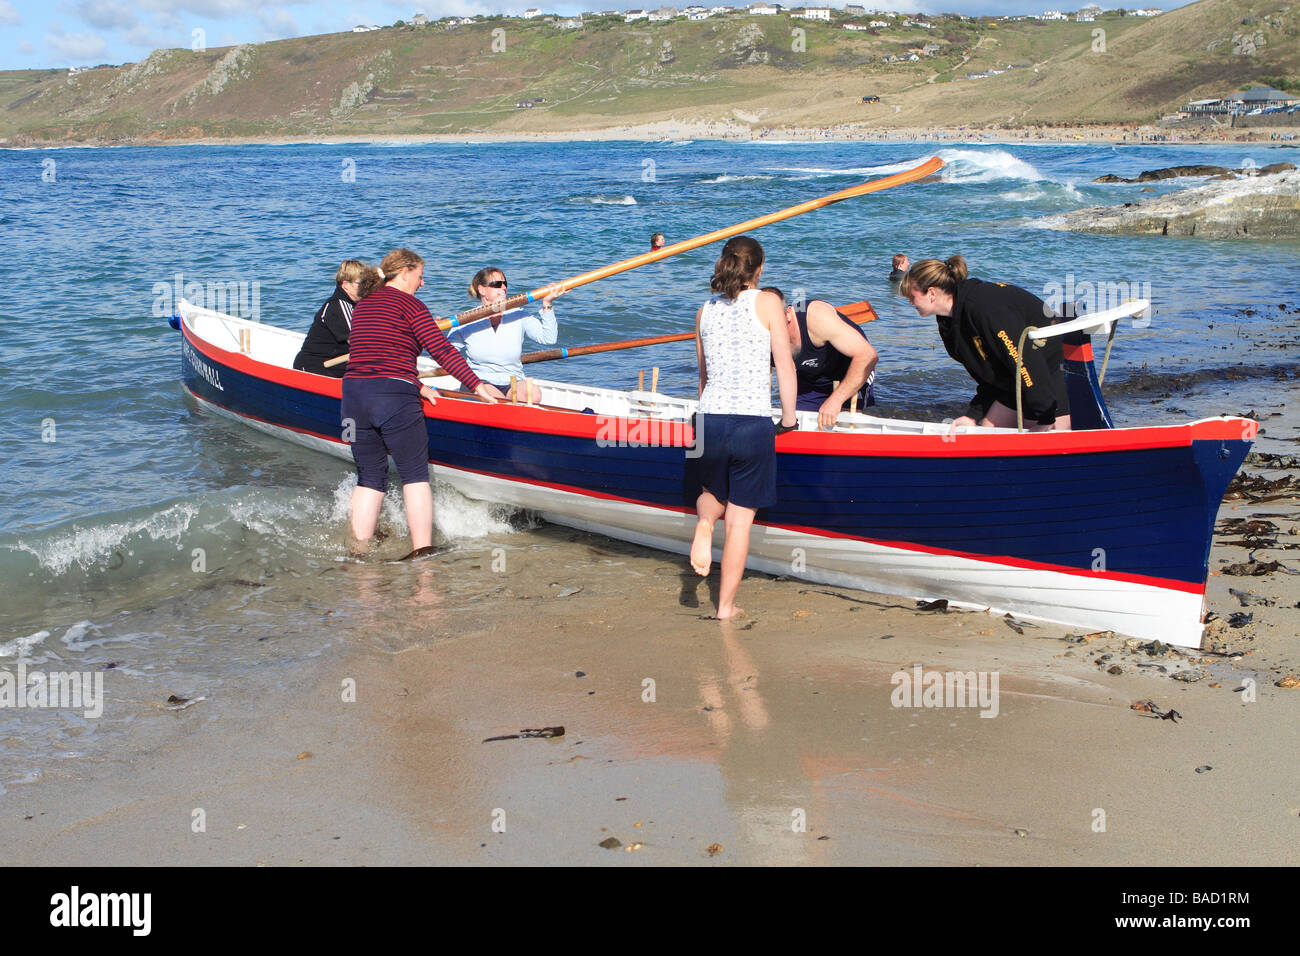 Sennen Cornwall the crew of the Cape Cornwall Pilot Gig boat prepare to launch from the sandy beach at Sennen Cove - Stock Image